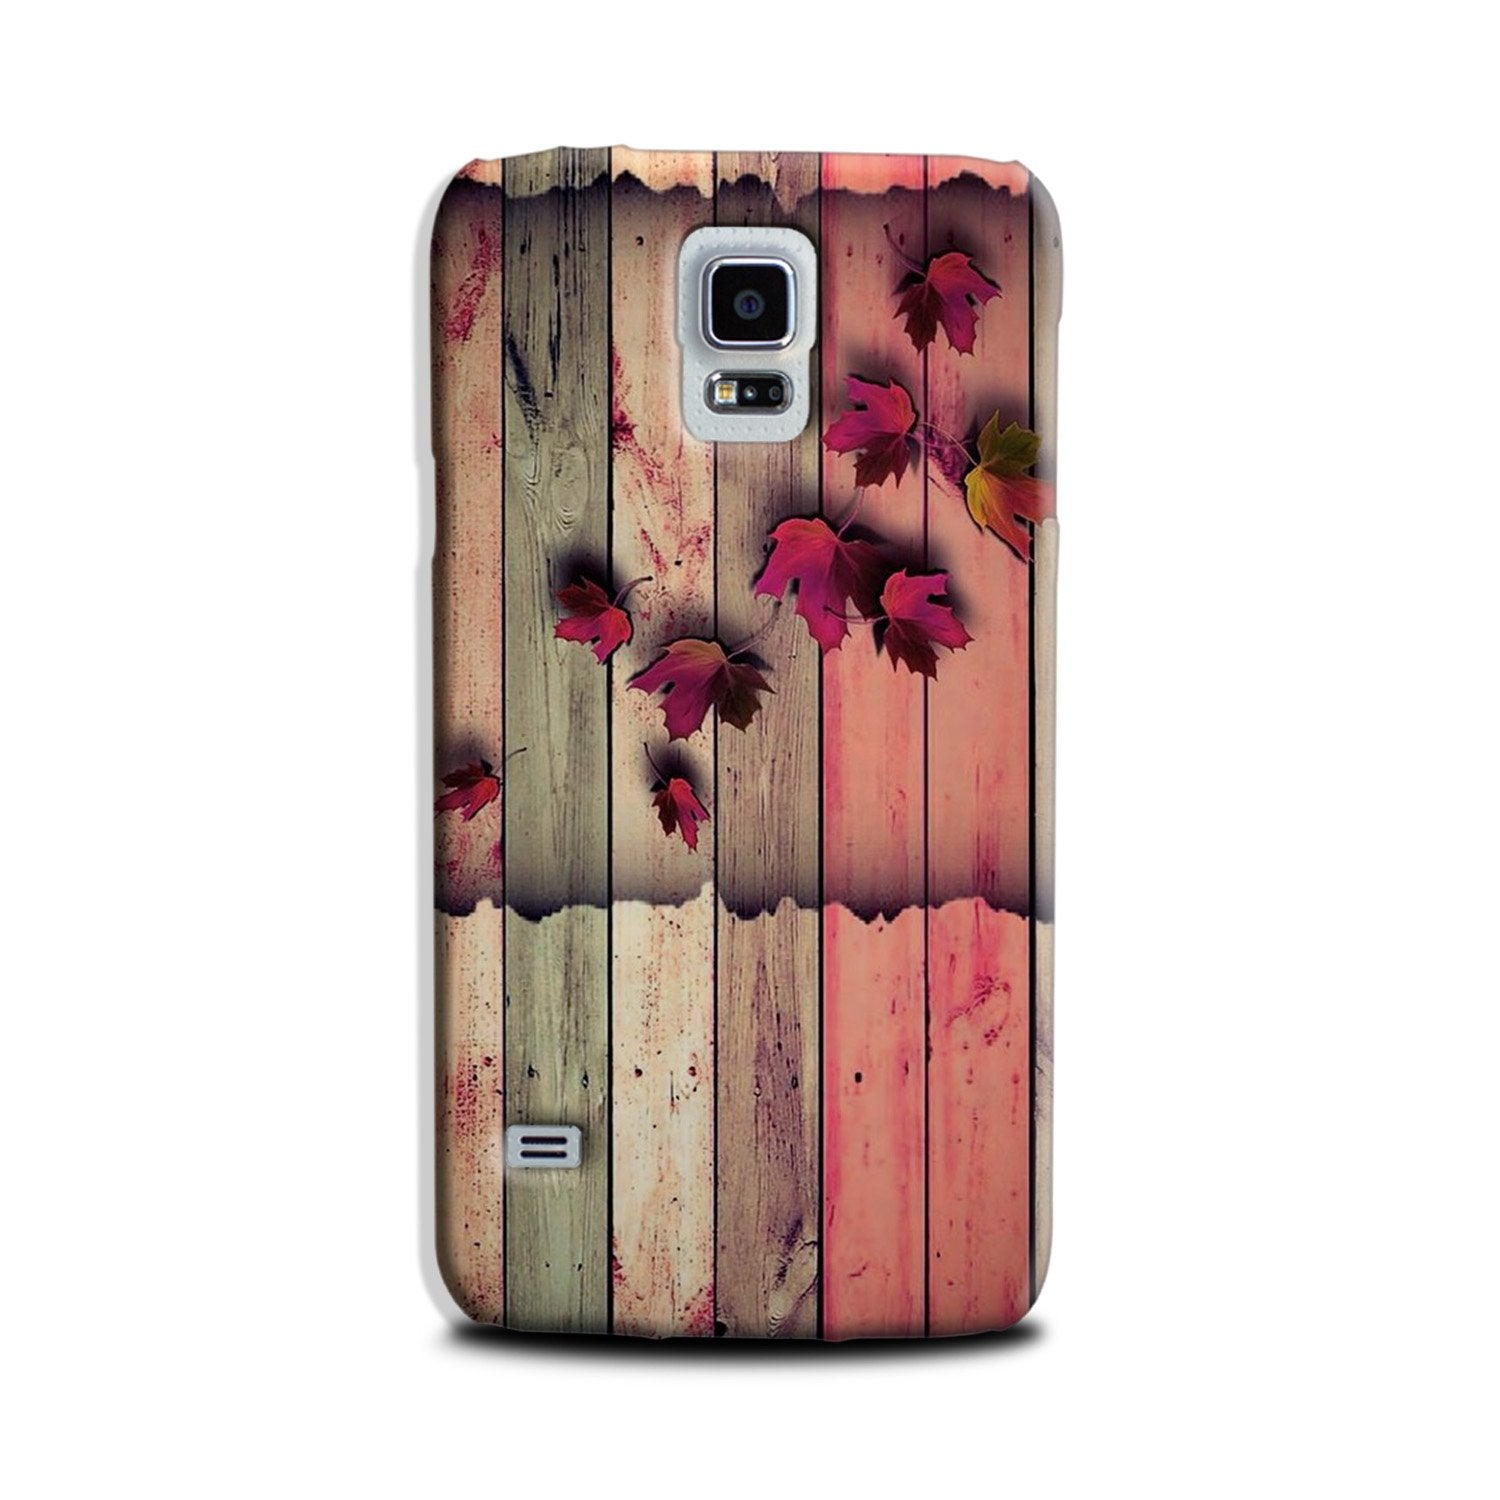 Wooden look2 Case for Galaxy S5